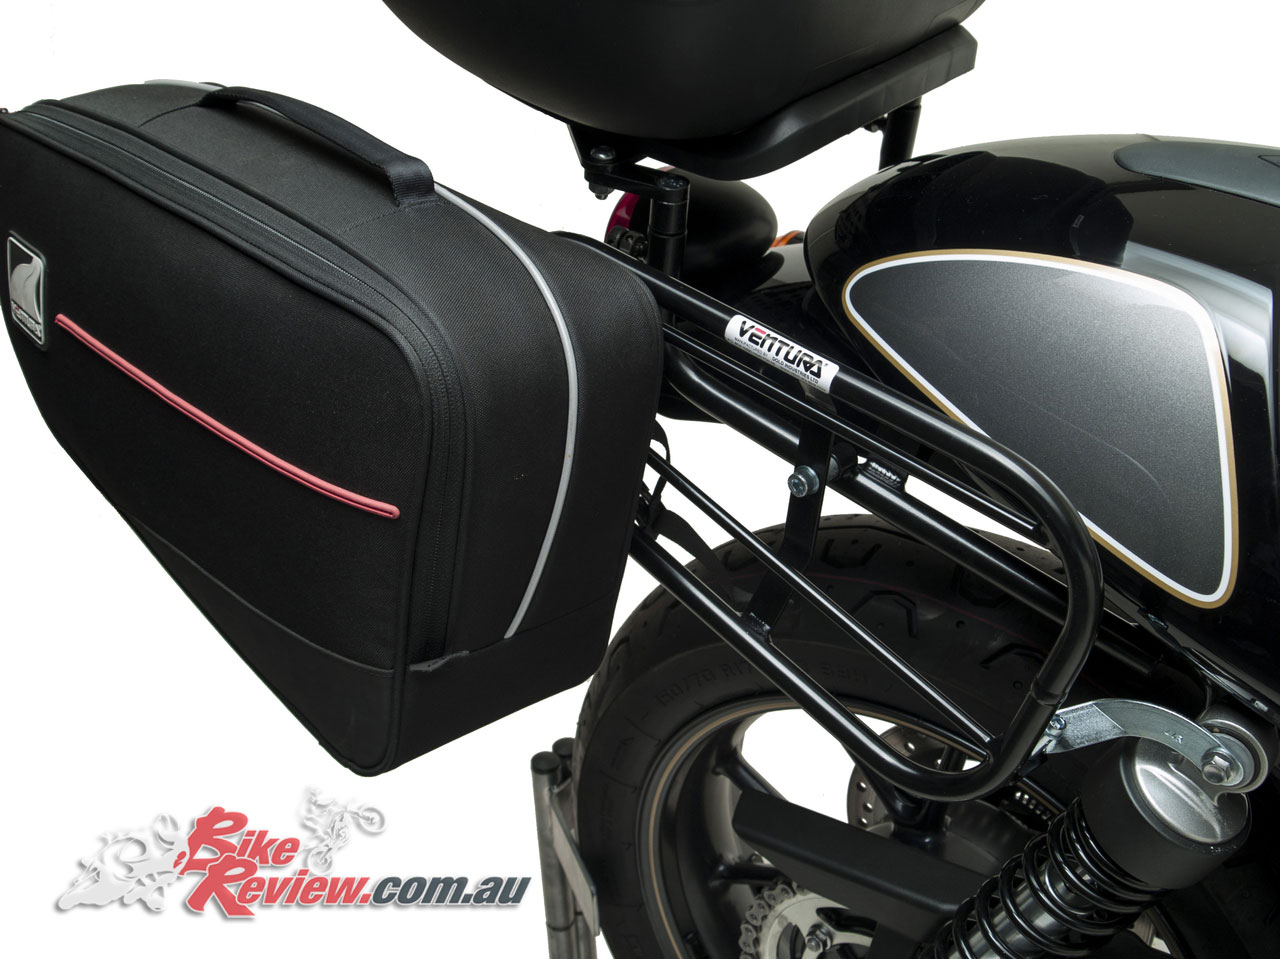 Ventura Luggage - Street Cup with Astro top box fitted along with Bonneville panniers